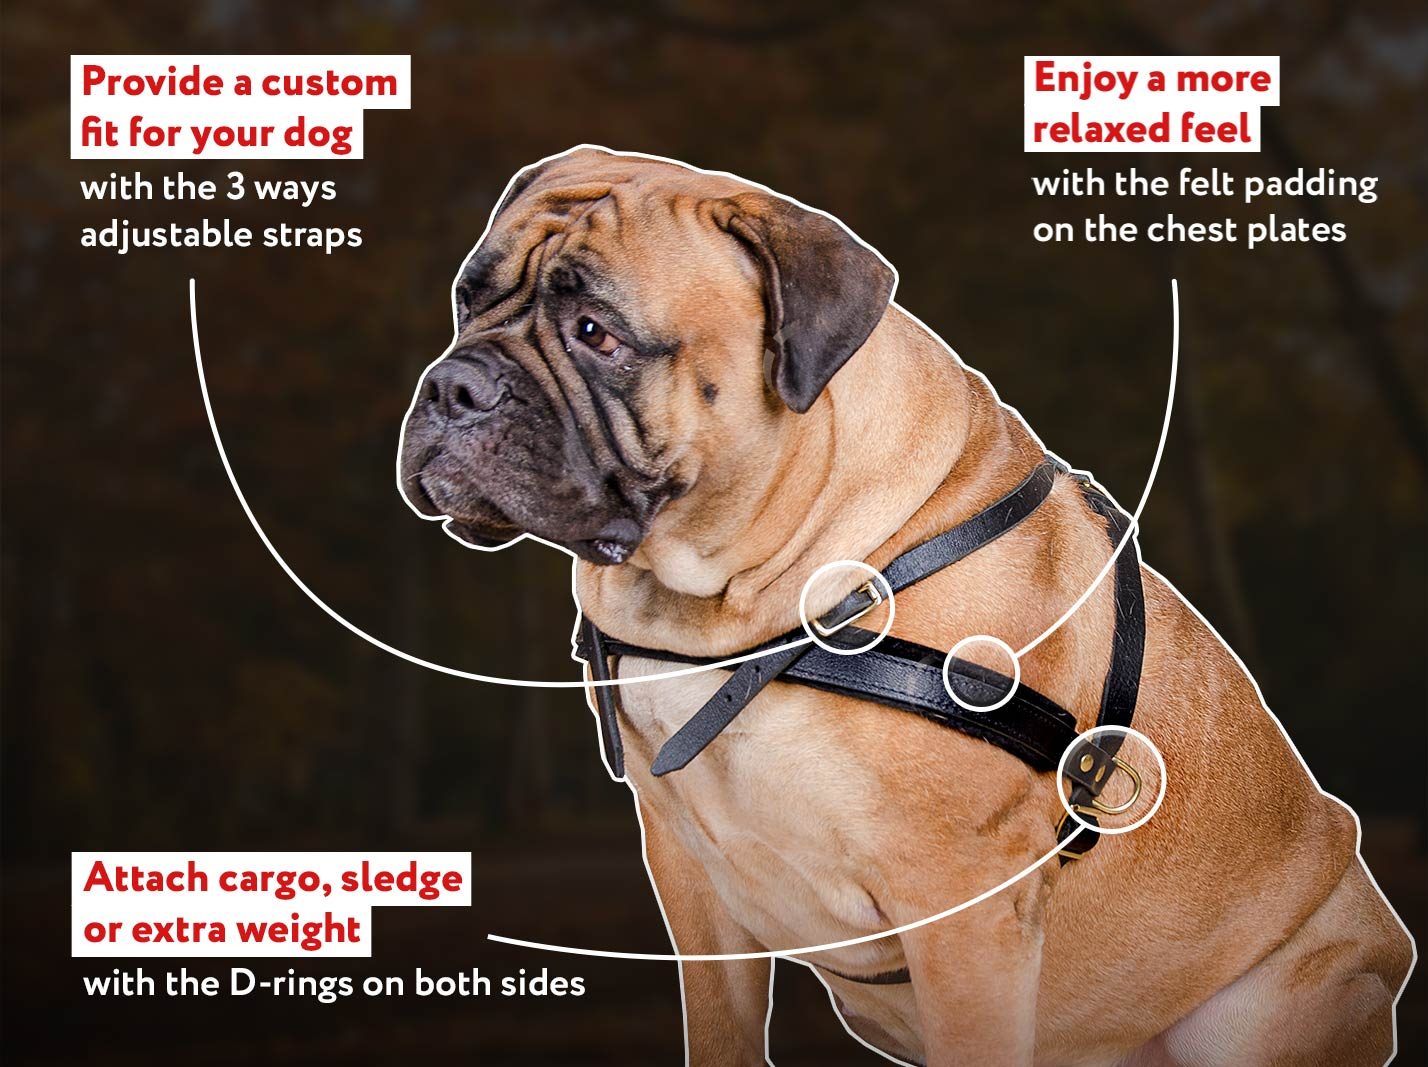 Training Leather Dog Harness - Multifunctional Dog Harness